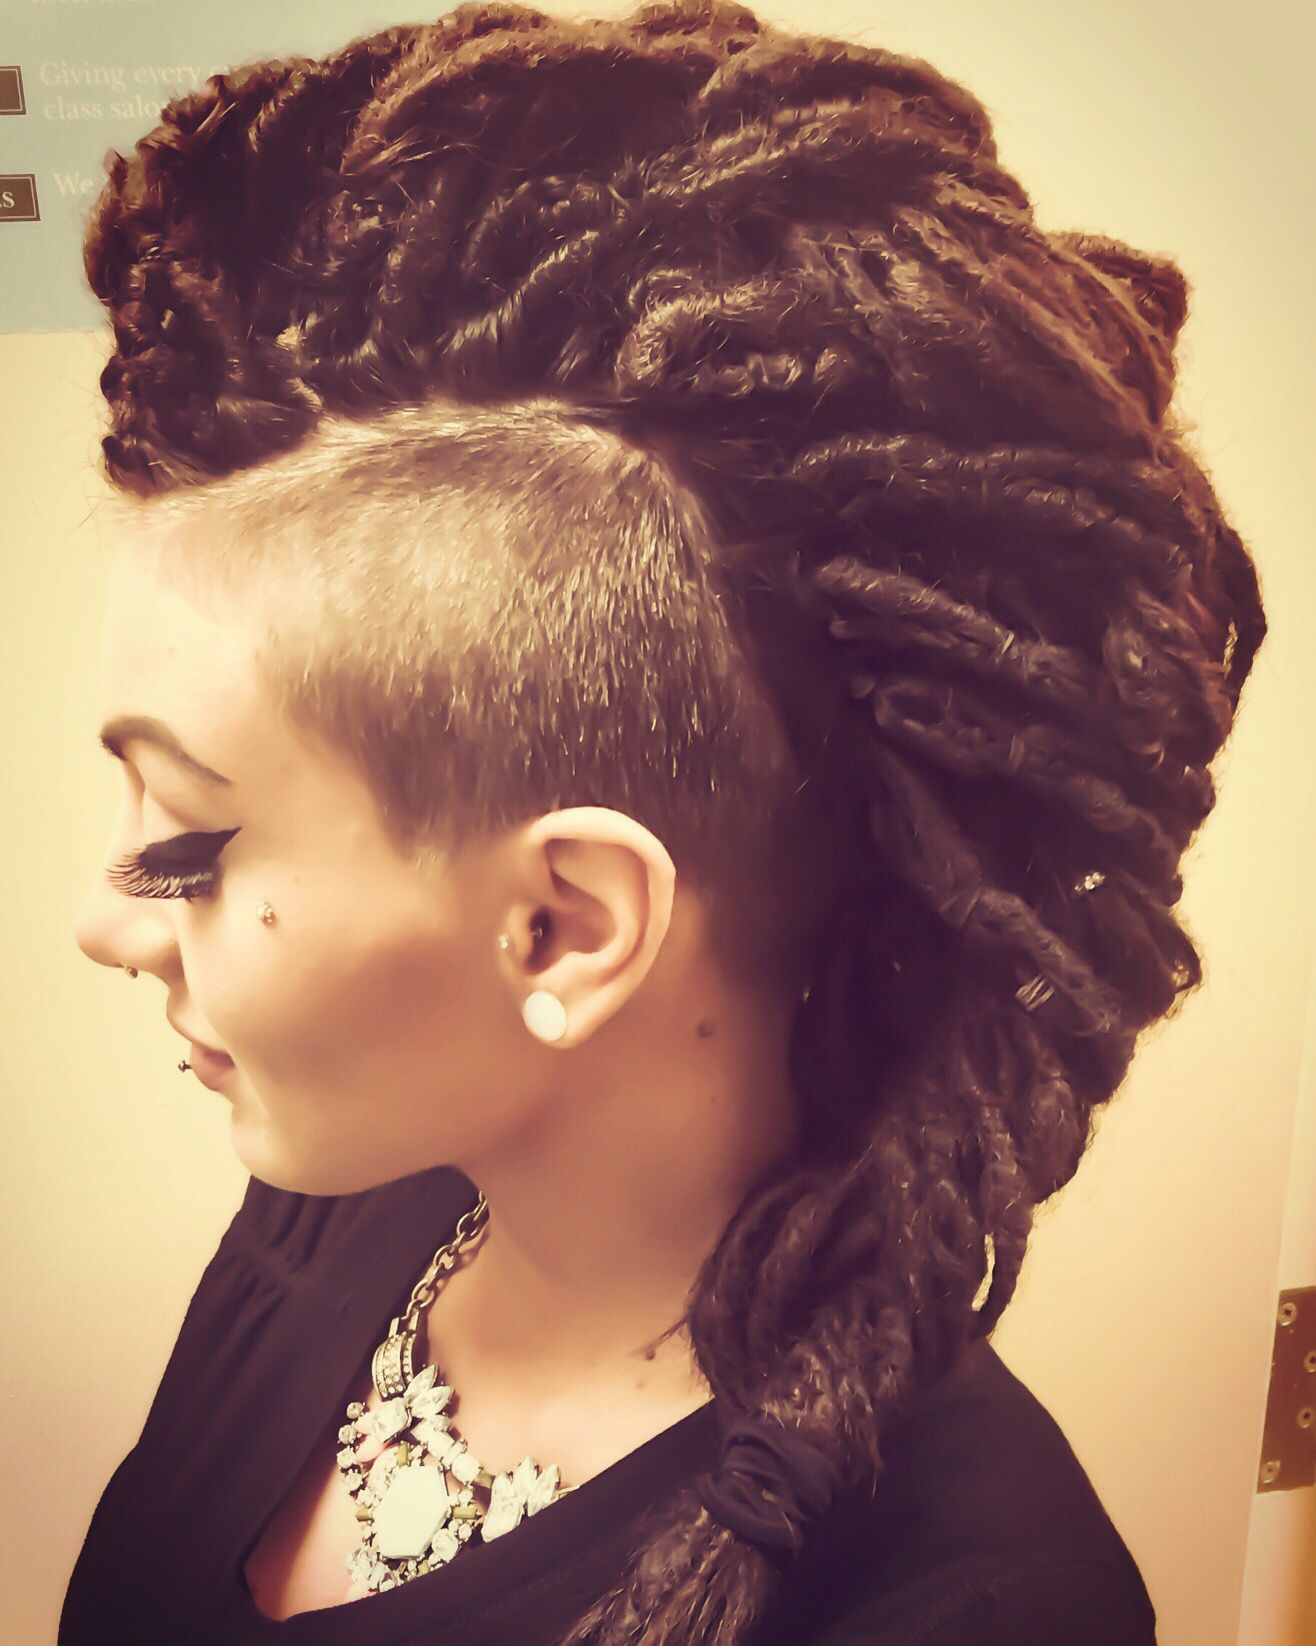 Synthetic double ended dreadlocks ium french braid with undercut